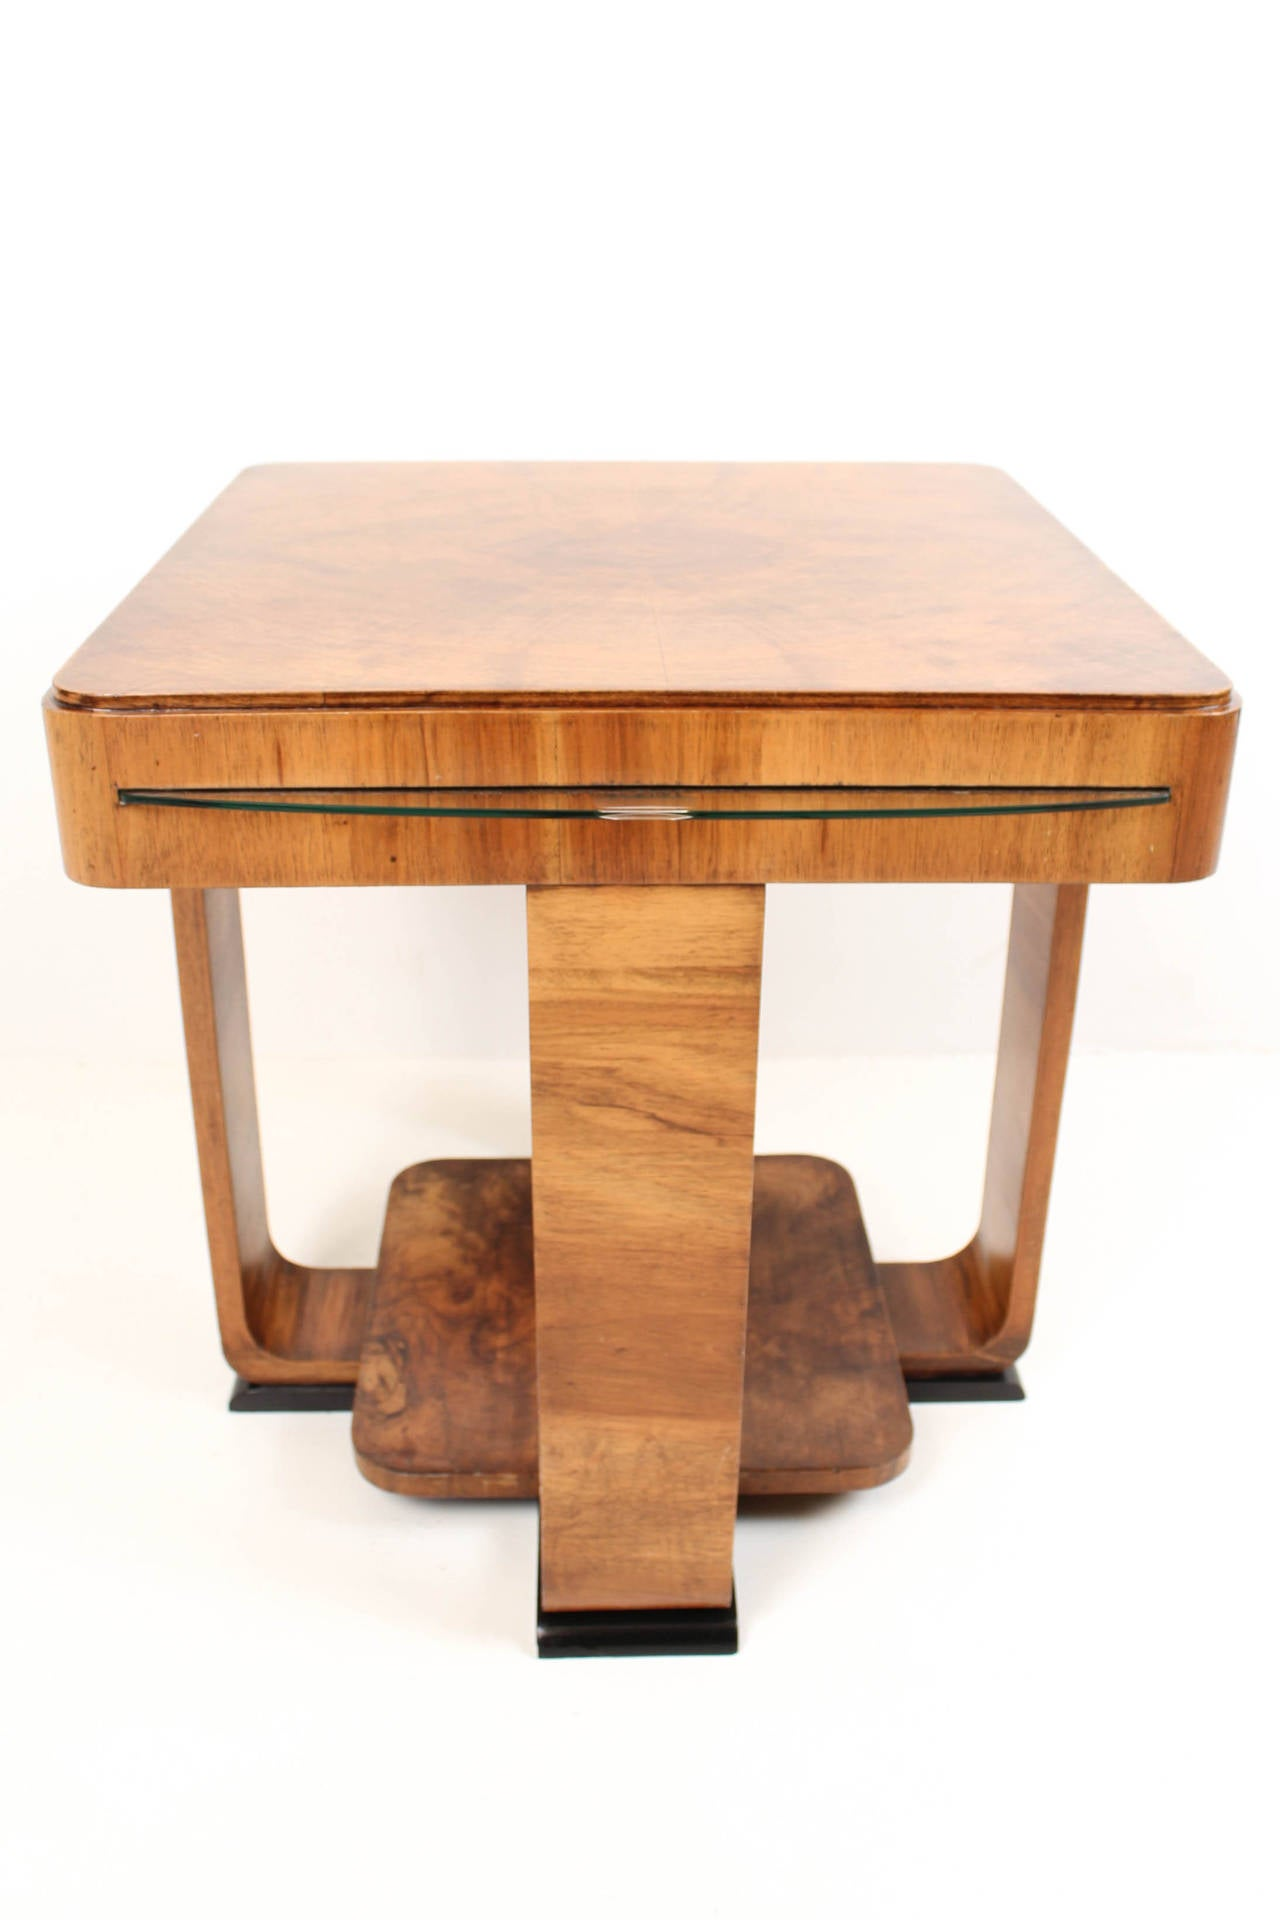 Rare French Art Deco Walnut Coffee Table At 1stdibs